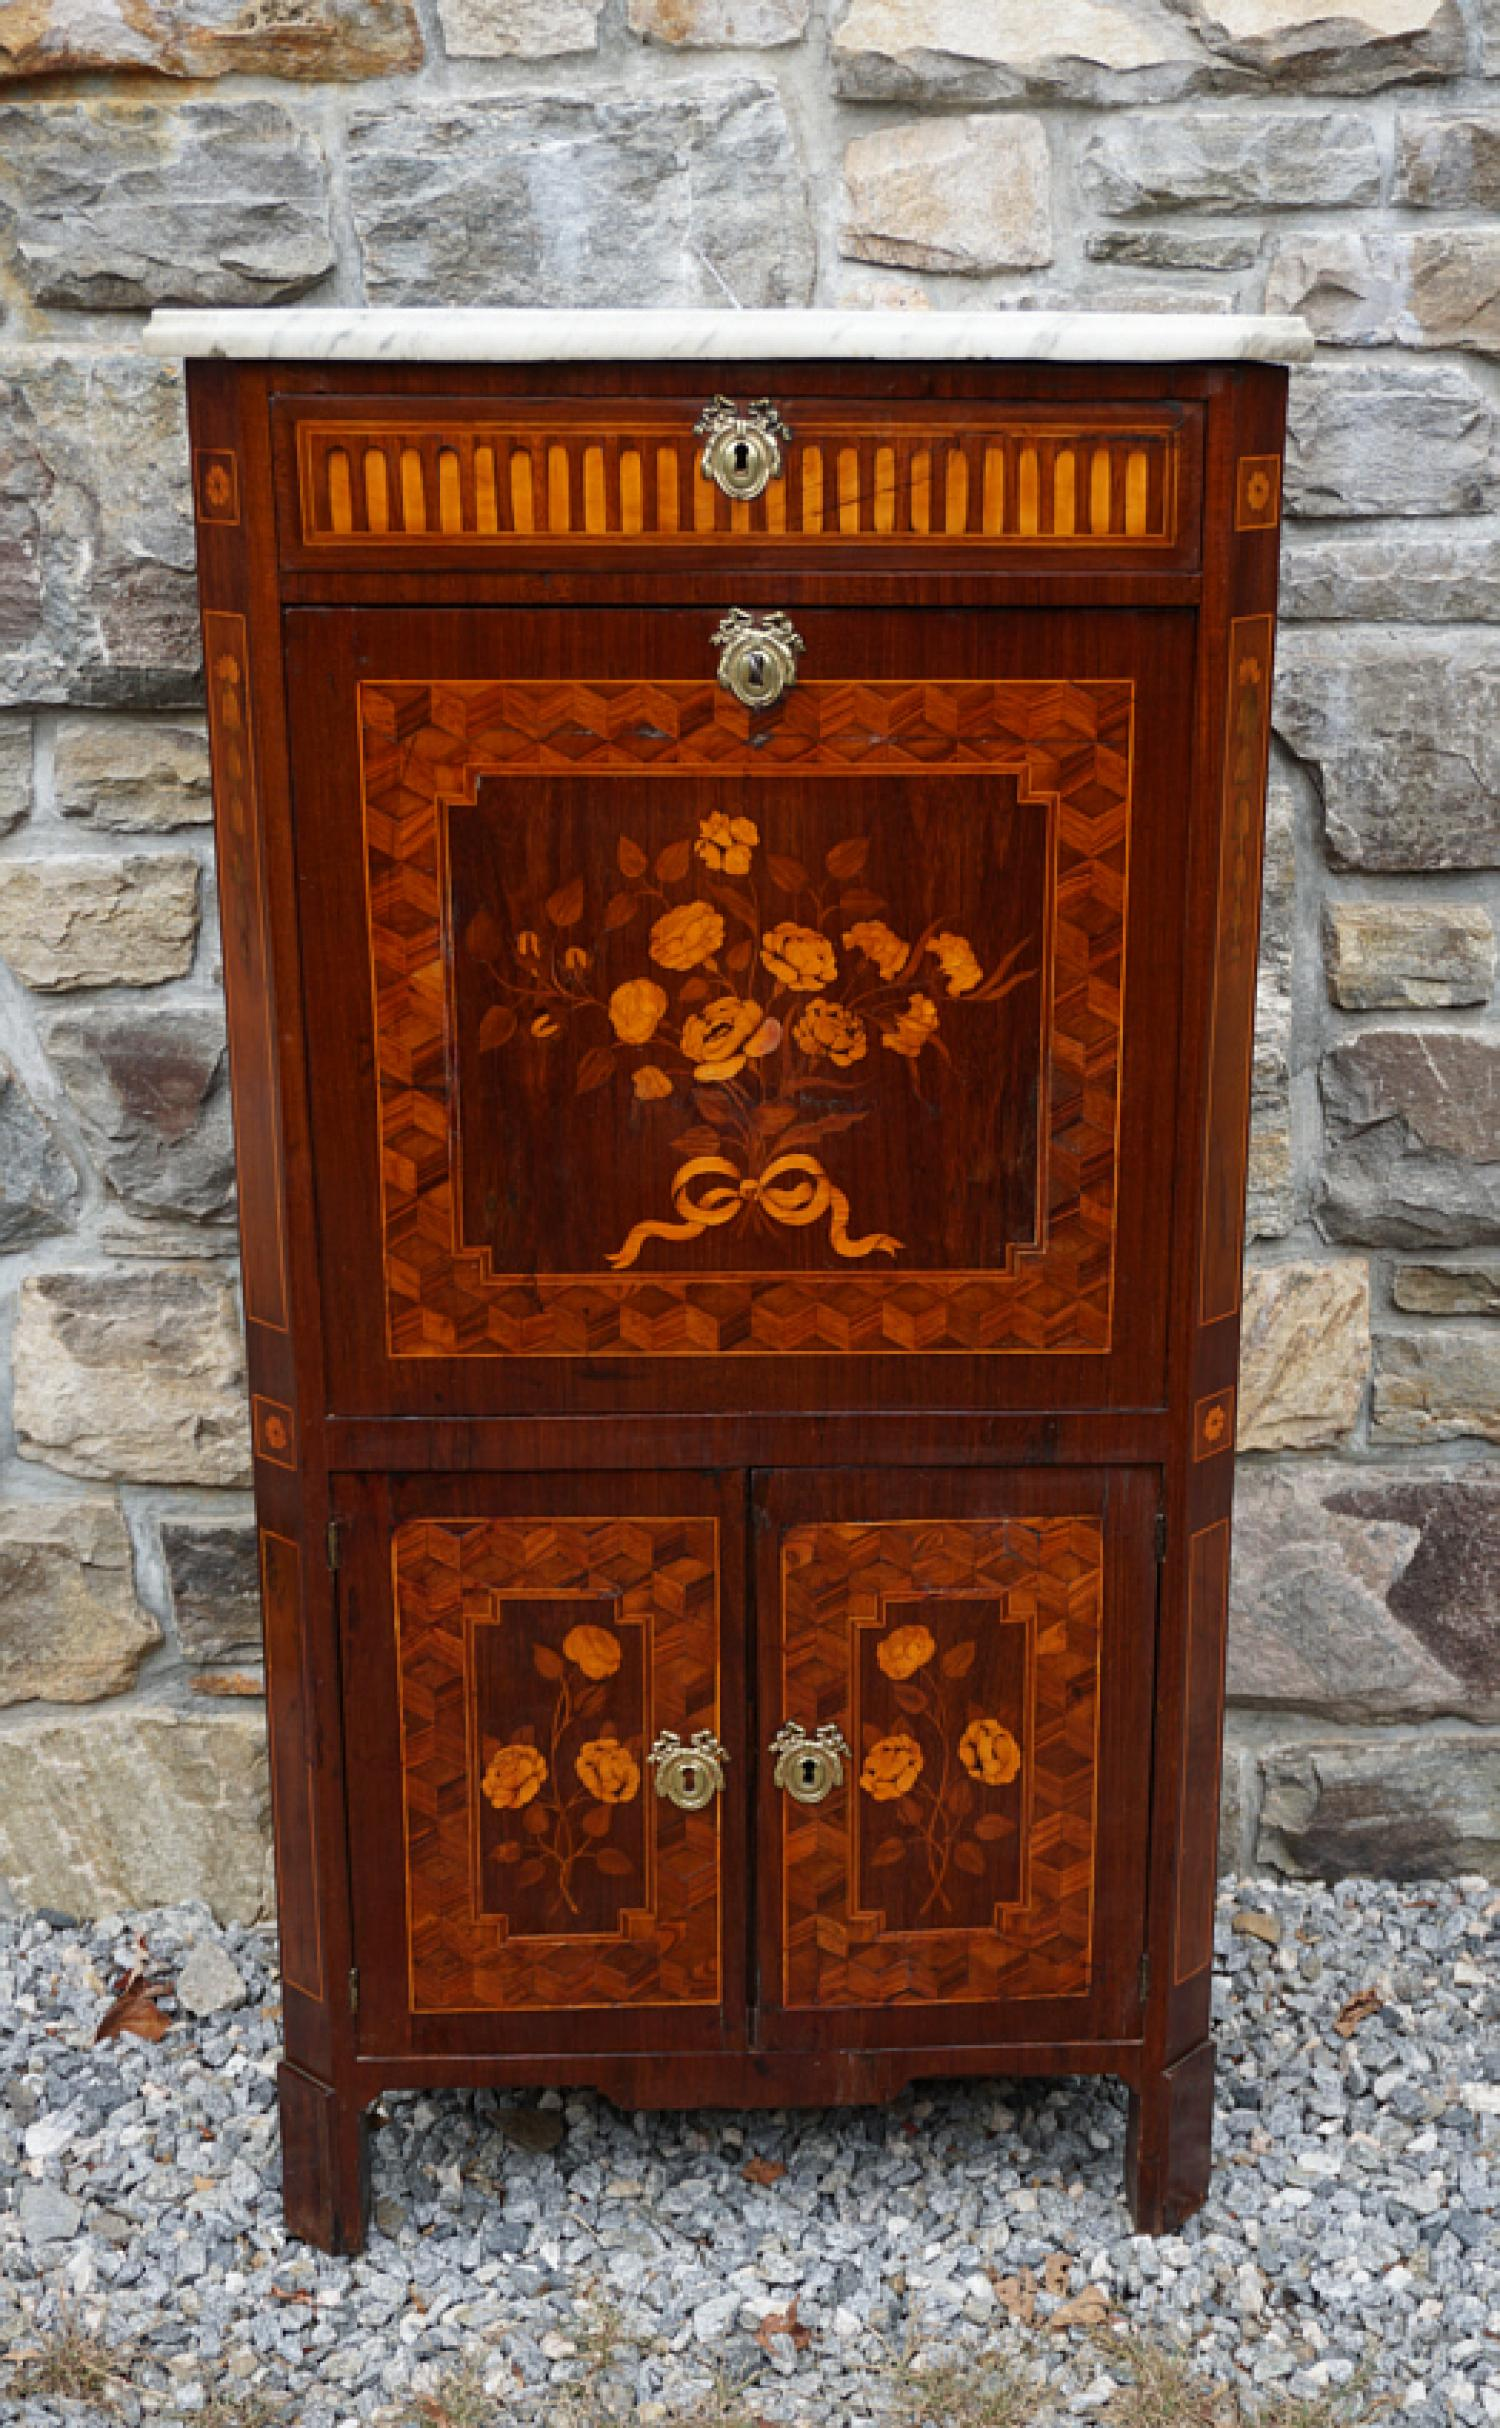 Antique French secretaire abattant with floral inlay c1850